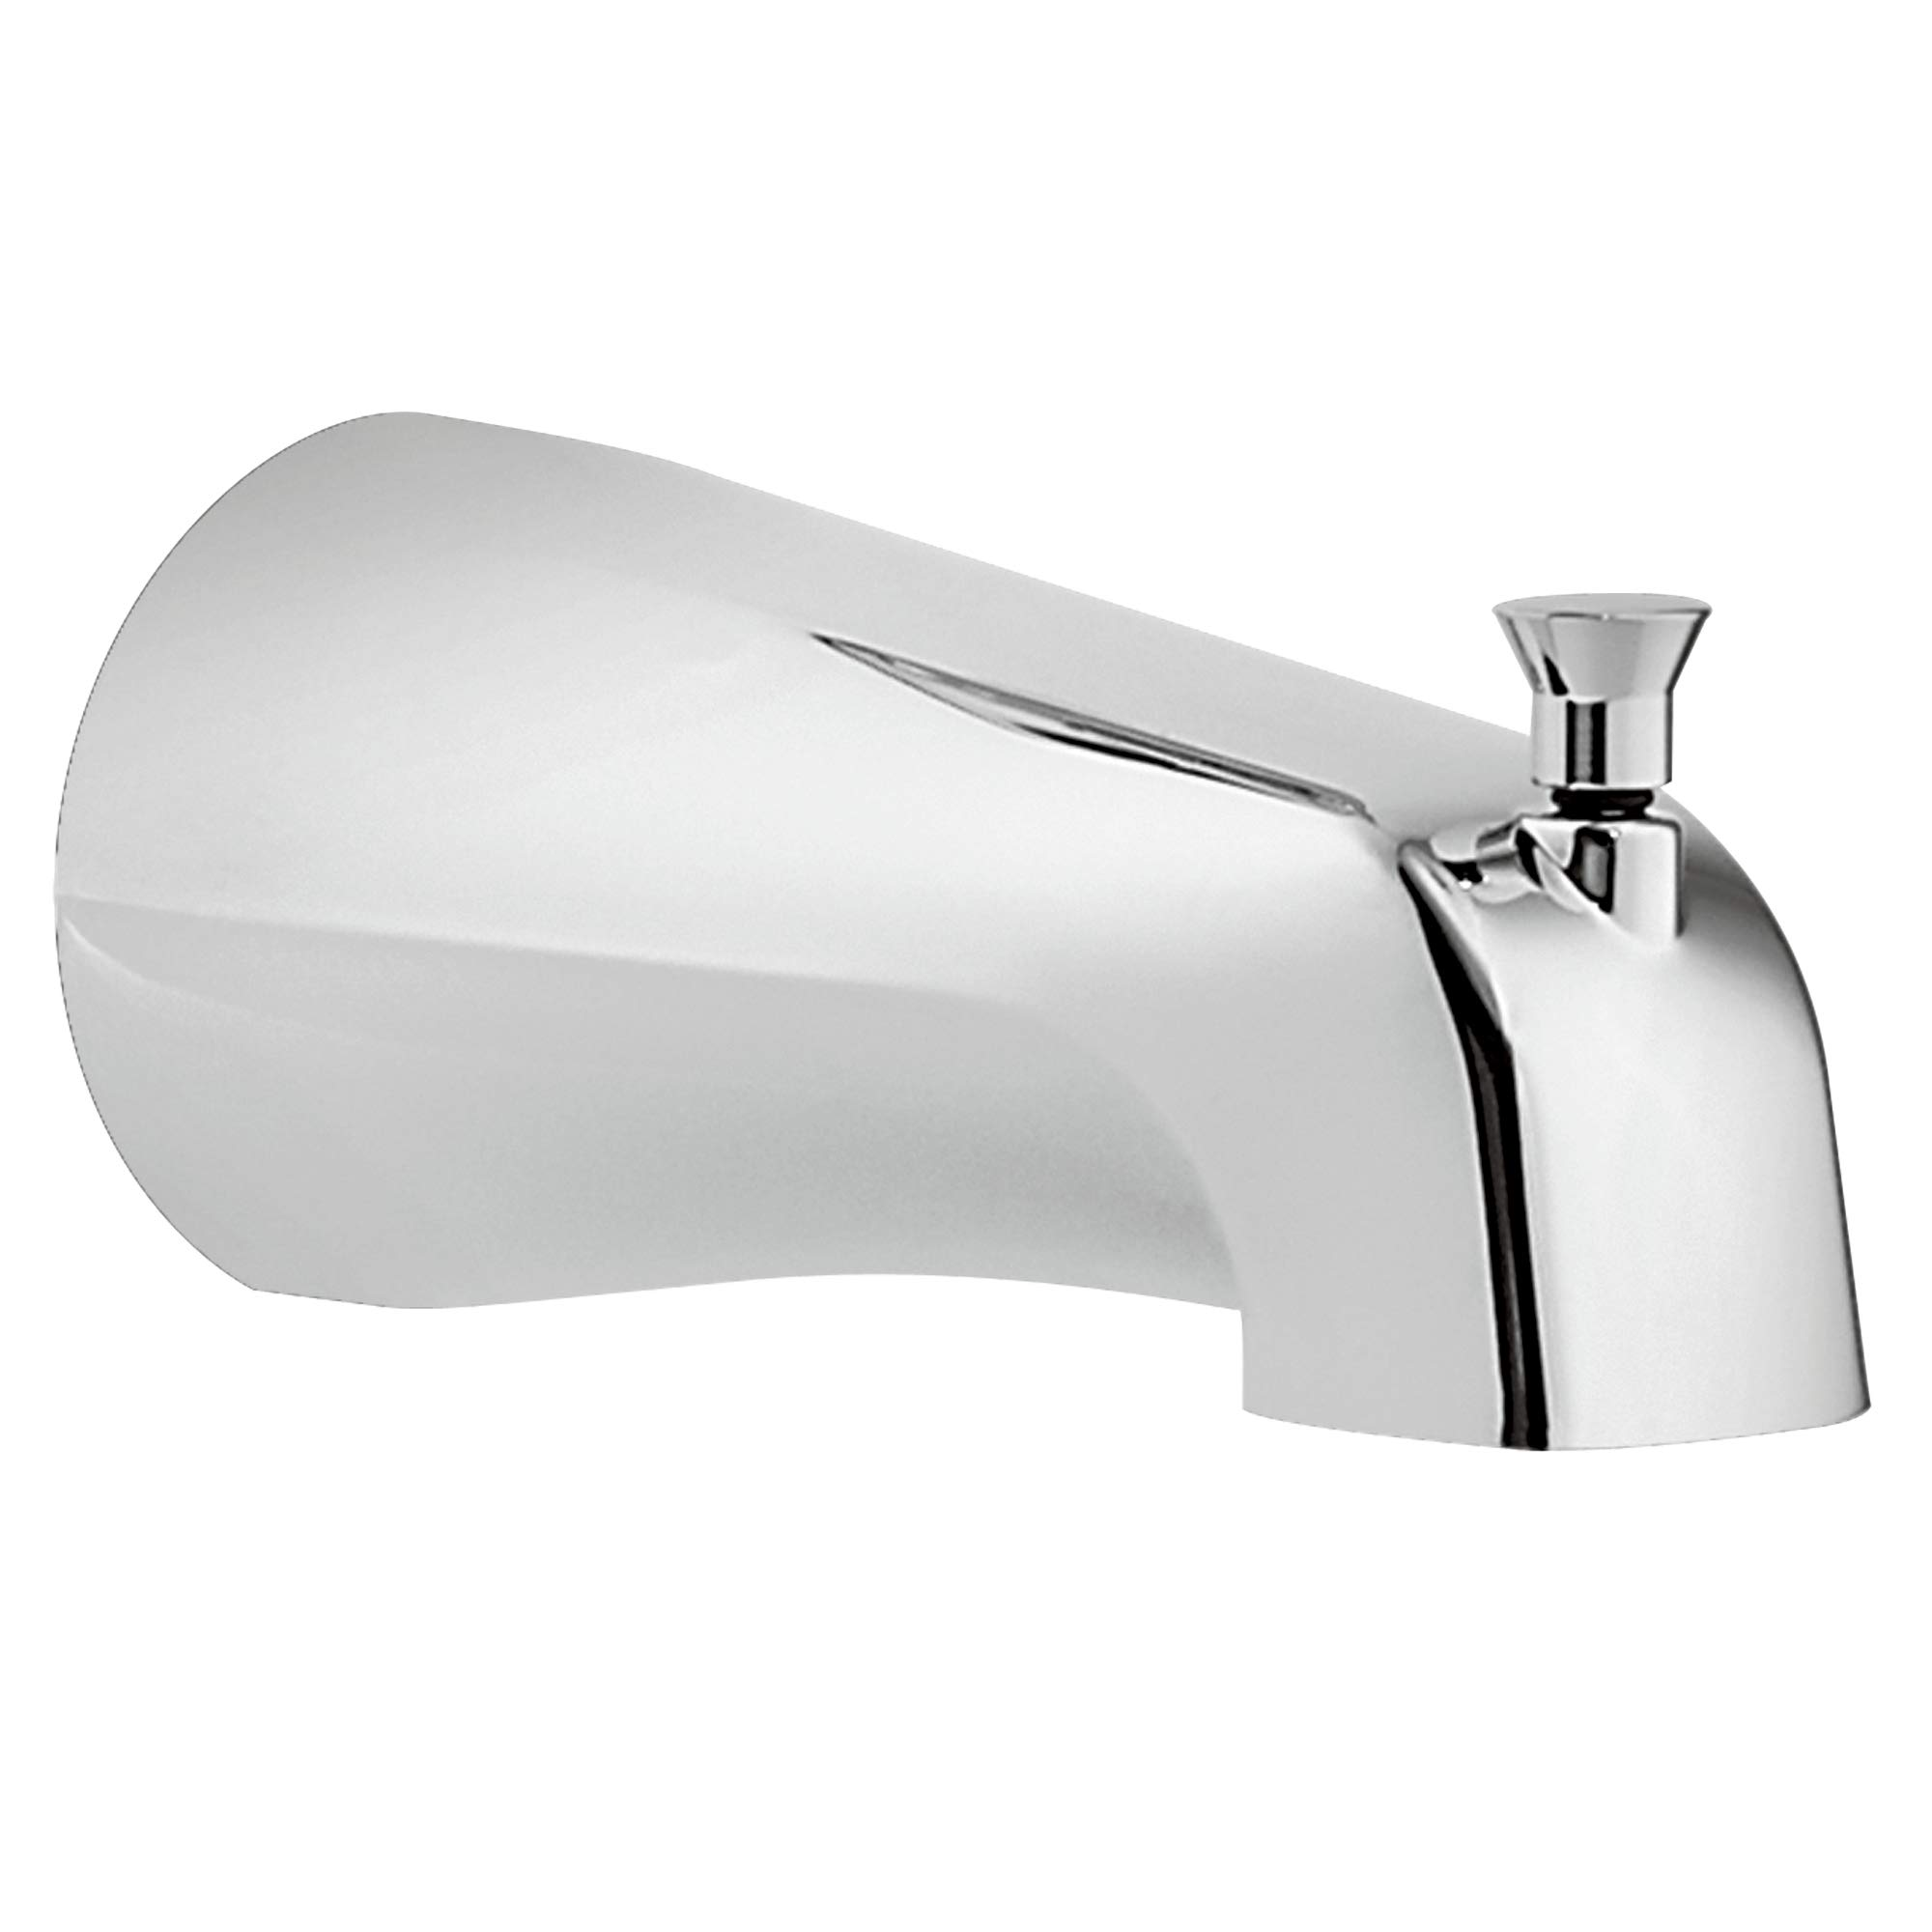 Moen 3801 Tub Spout with Diverter, 1/2-Inch Slip-fit CC Connection, Chrome by Moen